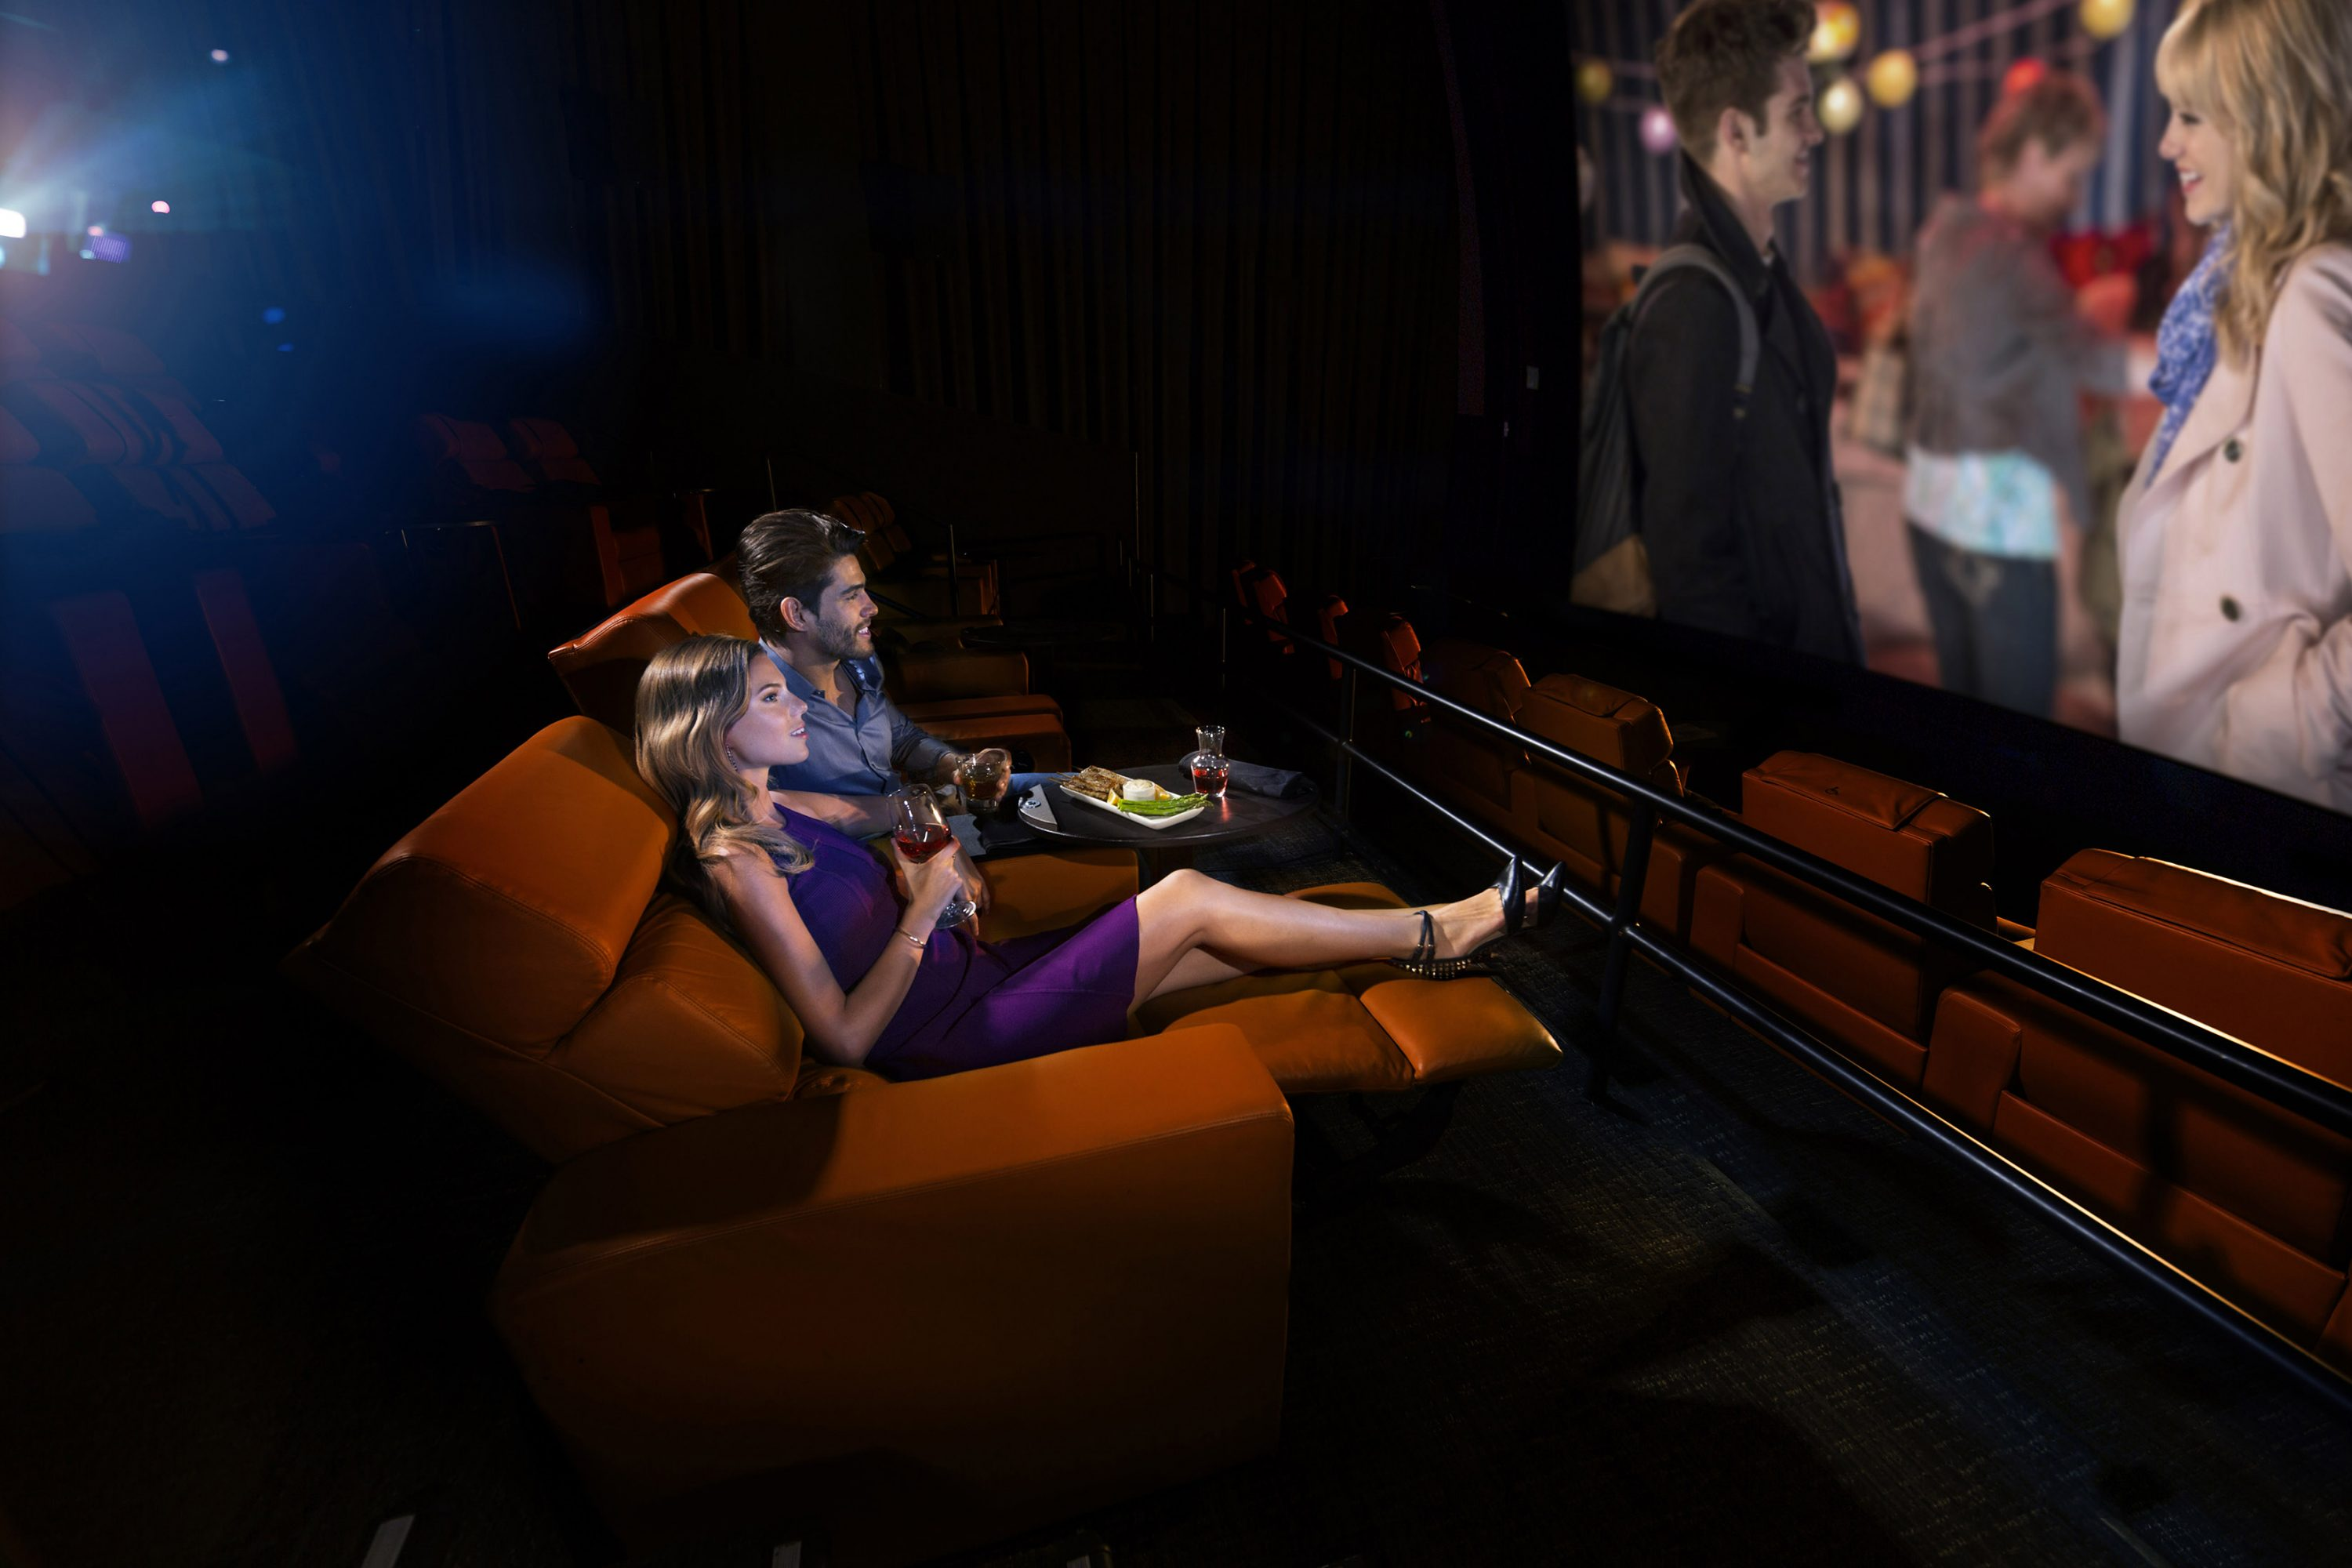 New UltraLuxe River Oaks Movie Theaters a Game Changer